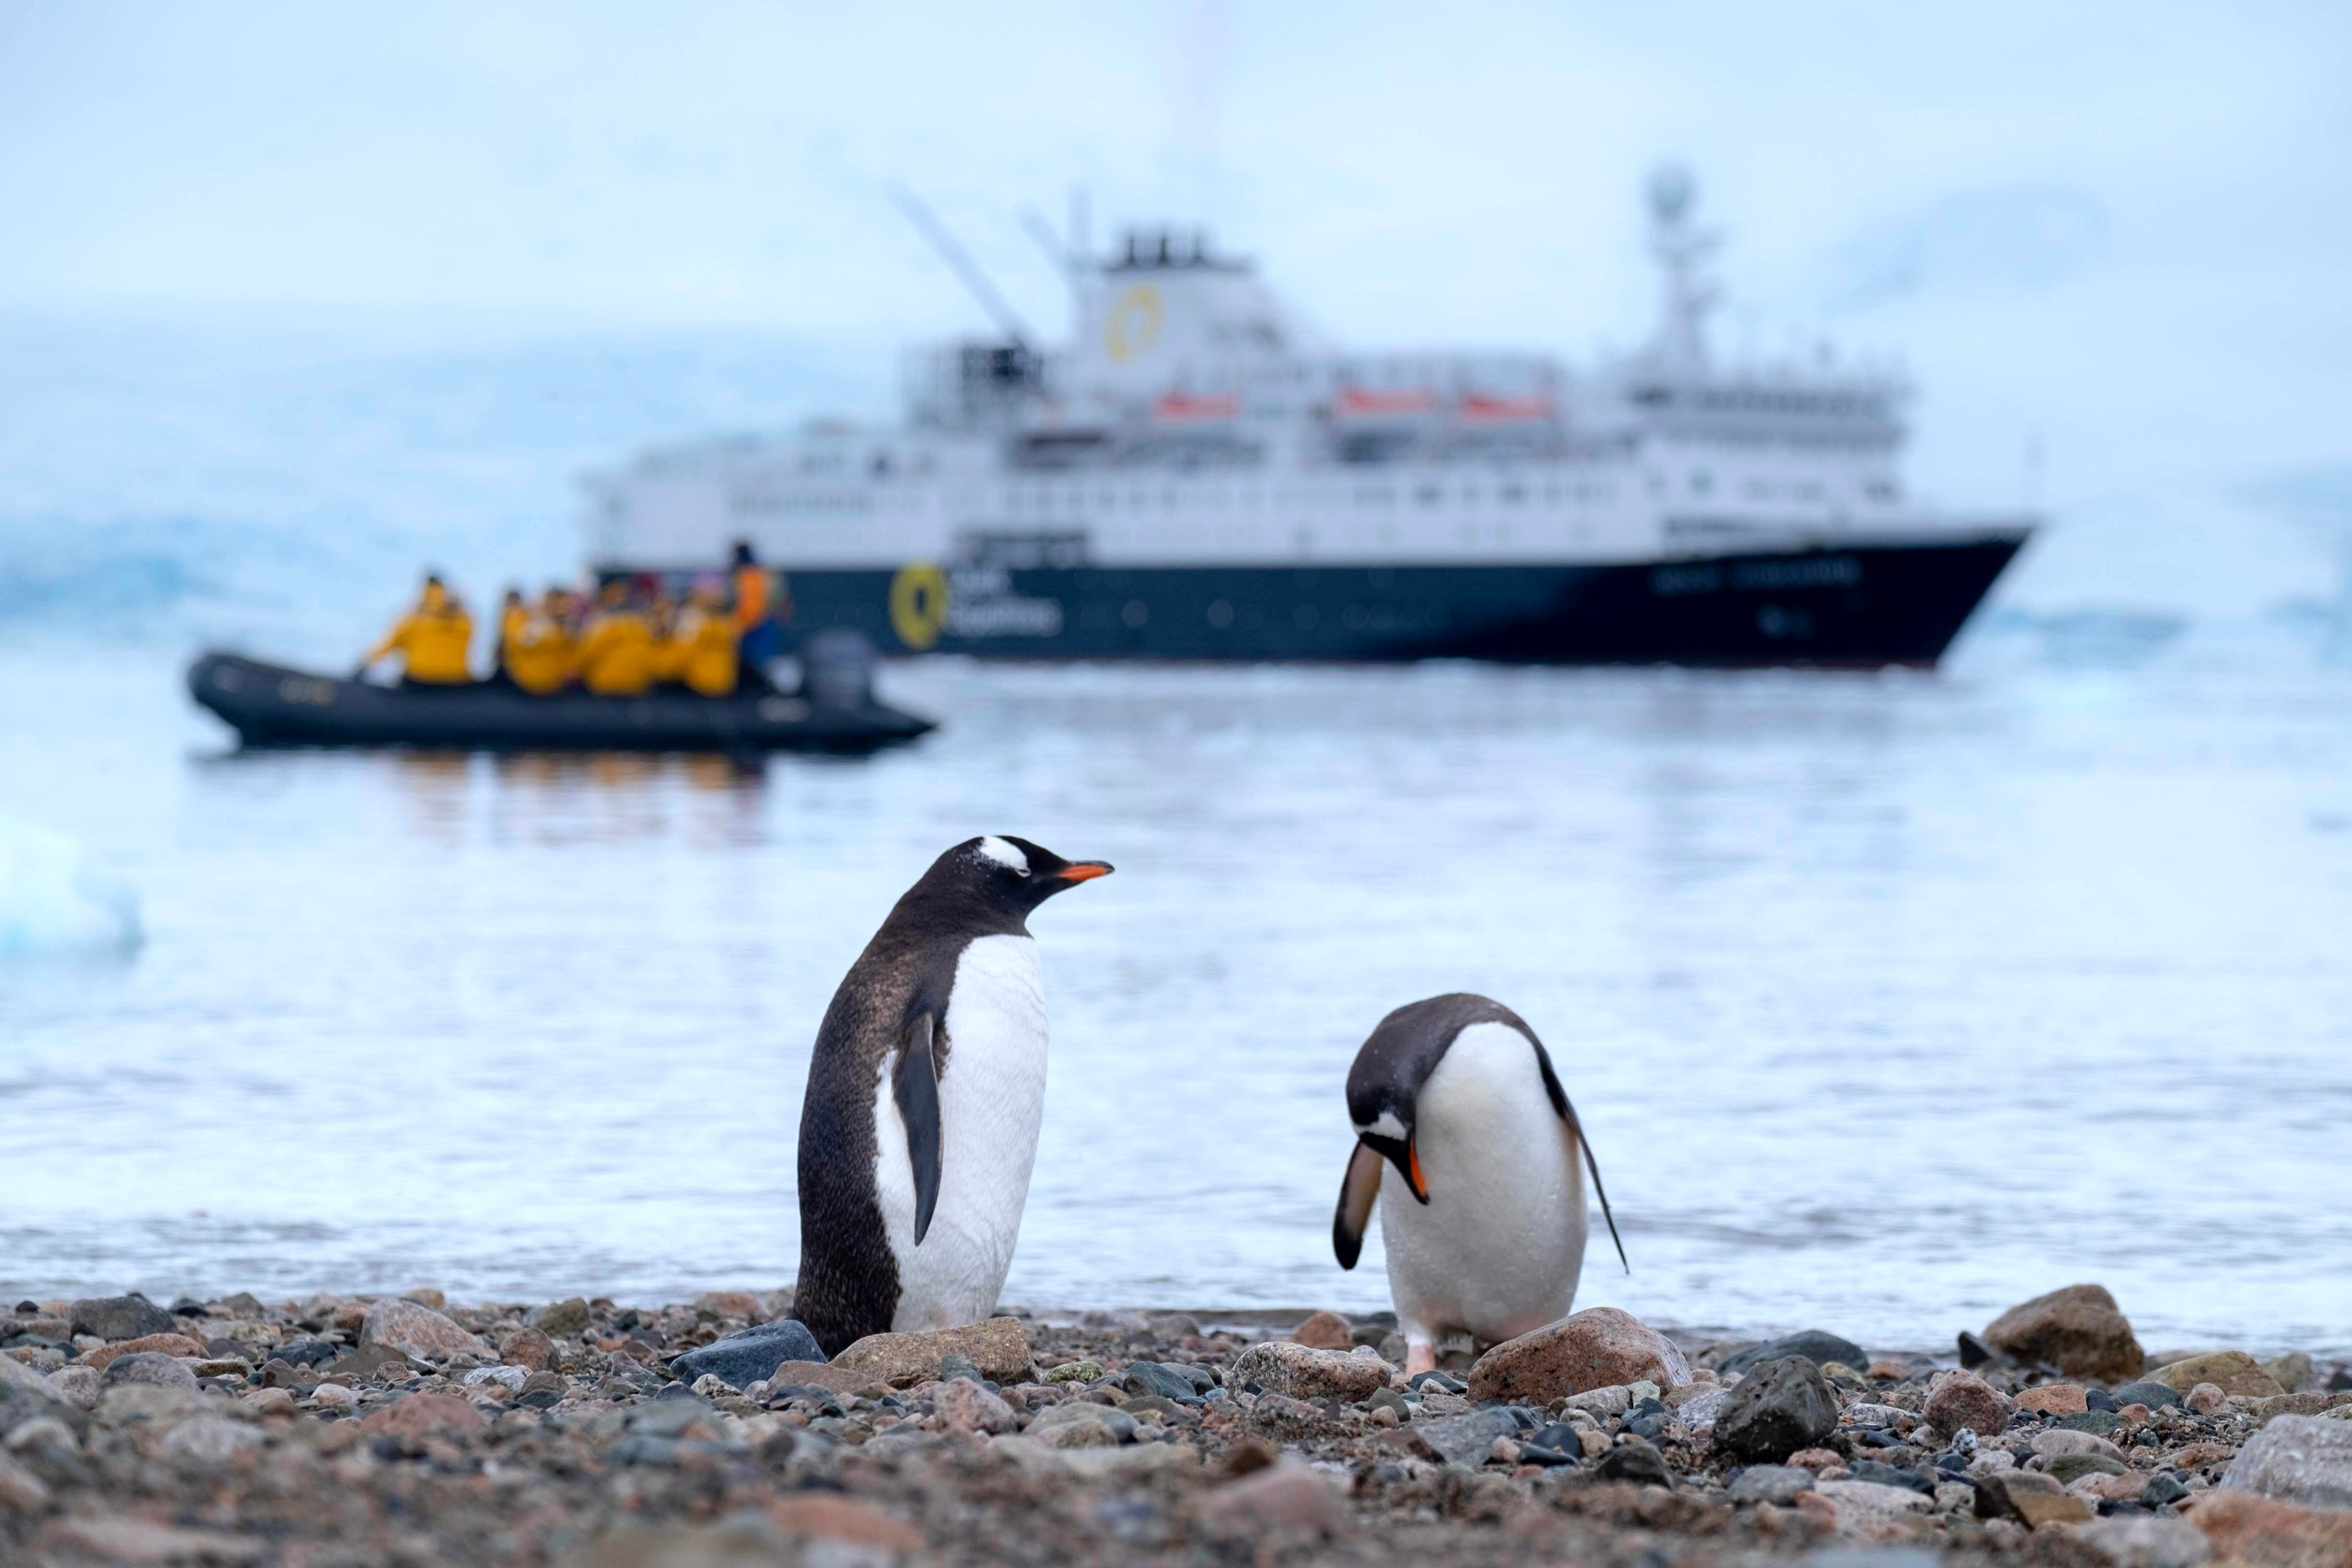 Penguins with ship in background